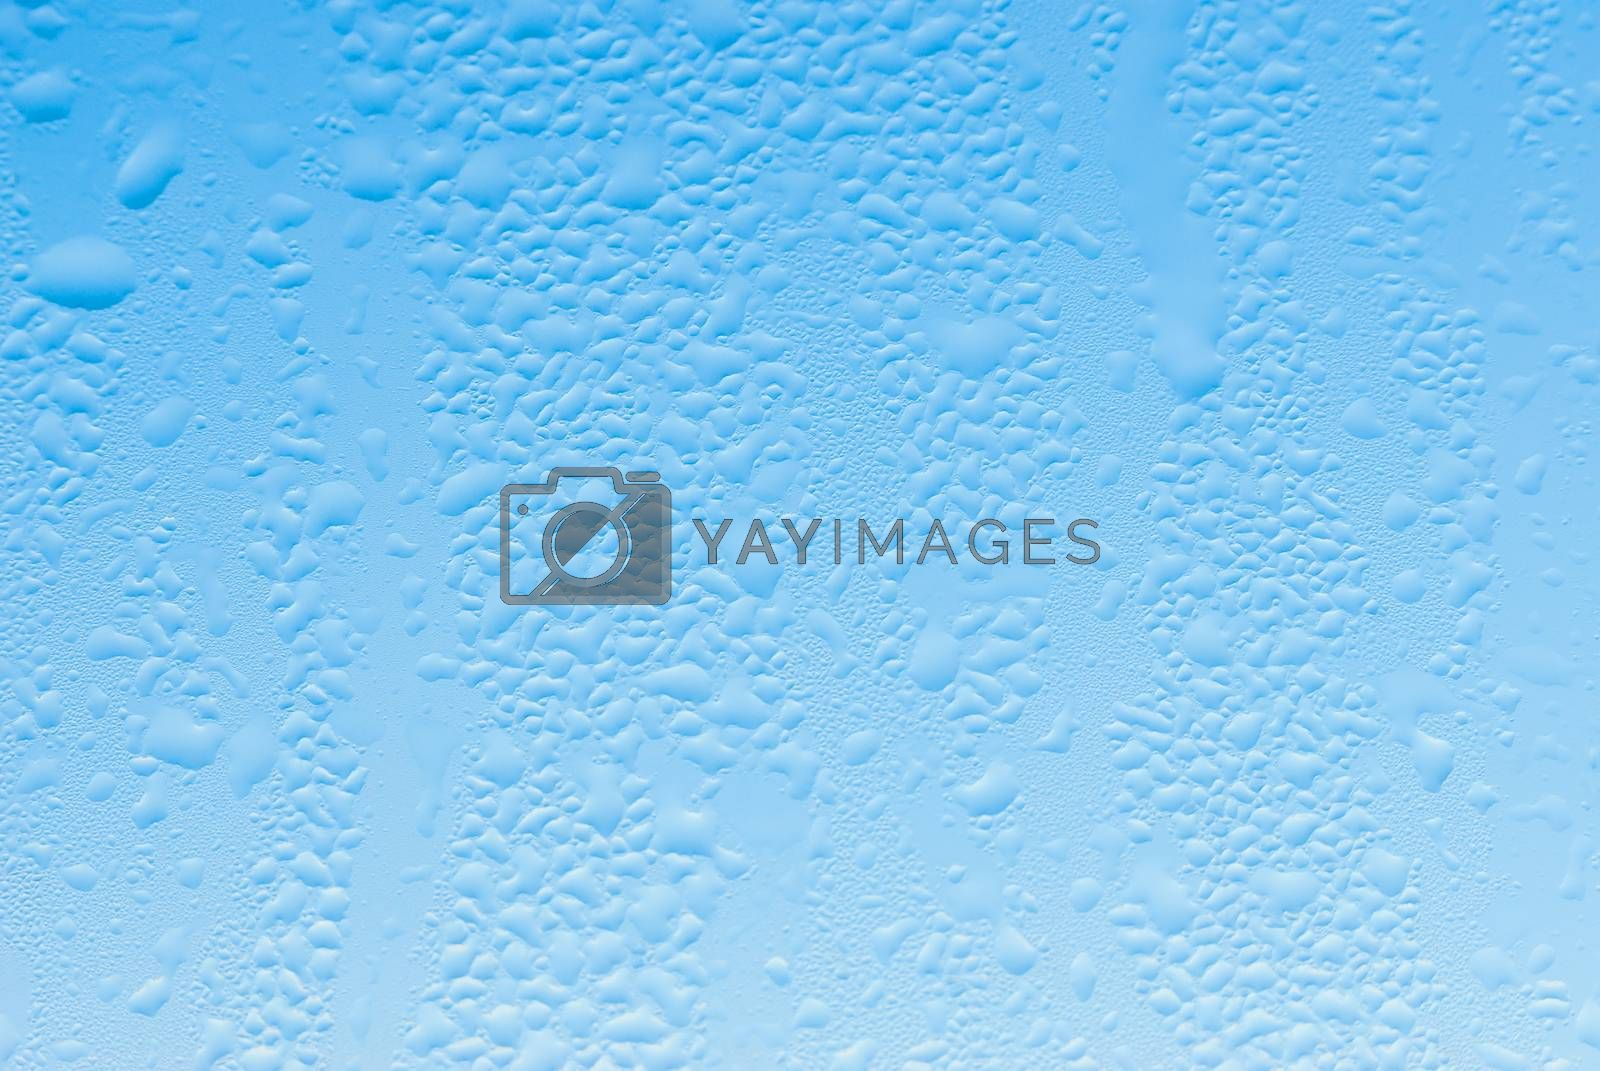 Royalty free image of Drops on glass by firewings